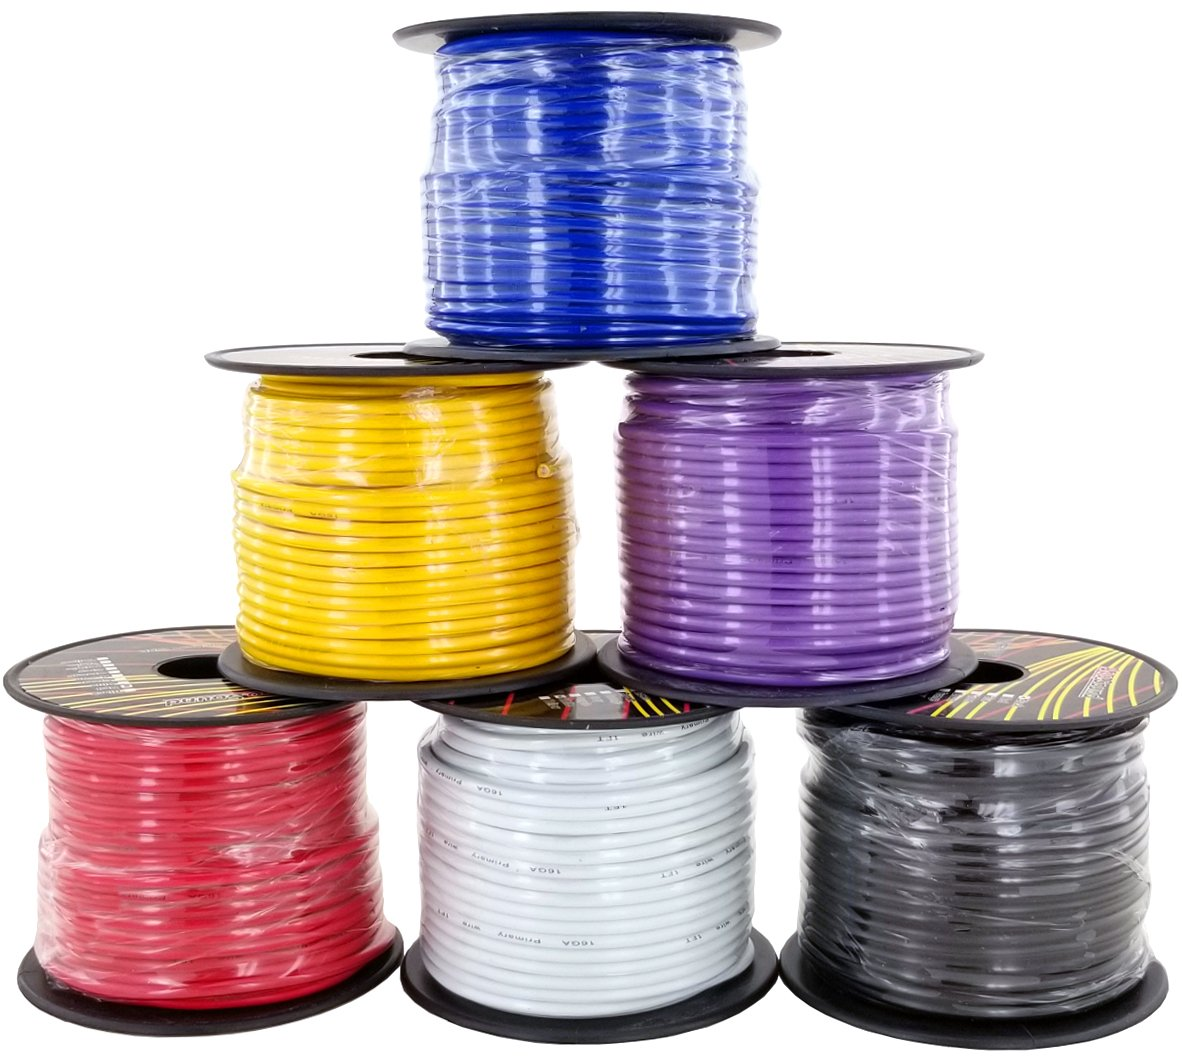 16 Gauge 6 Color Roll Primary Wire Combo Pack | 100 ft per Roll (600 feet Total) for Automotive Harness Hookup Car Speaker Audio Amplifier Remote Model Train LED Light Wiring